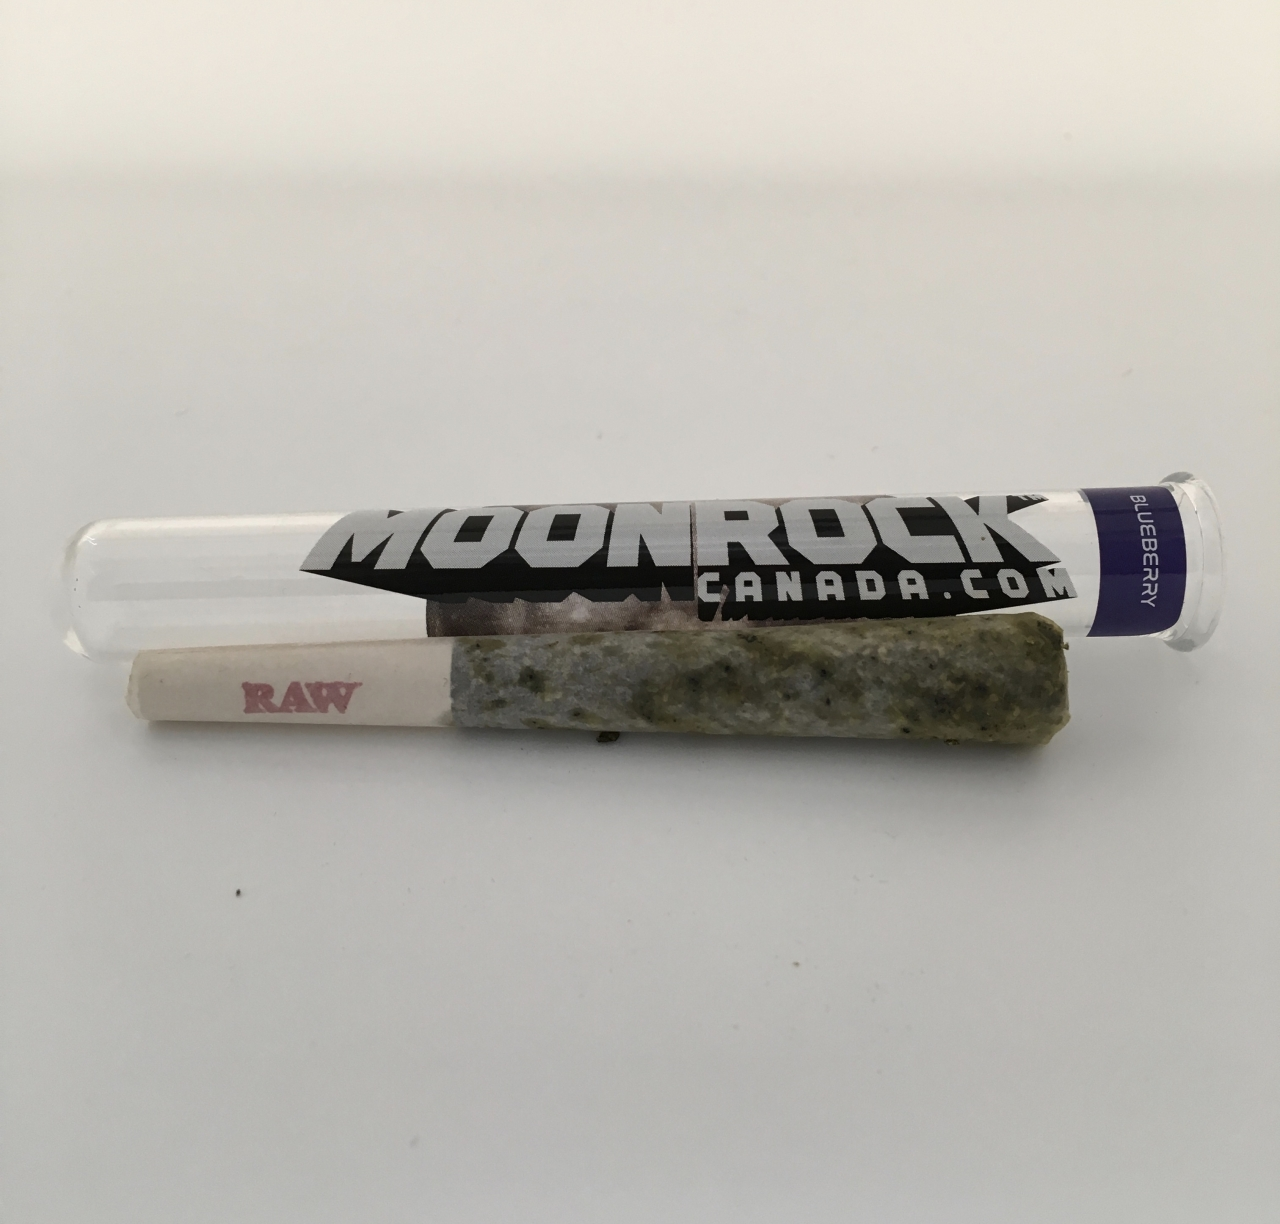 moonrockJblueberry.jpeg